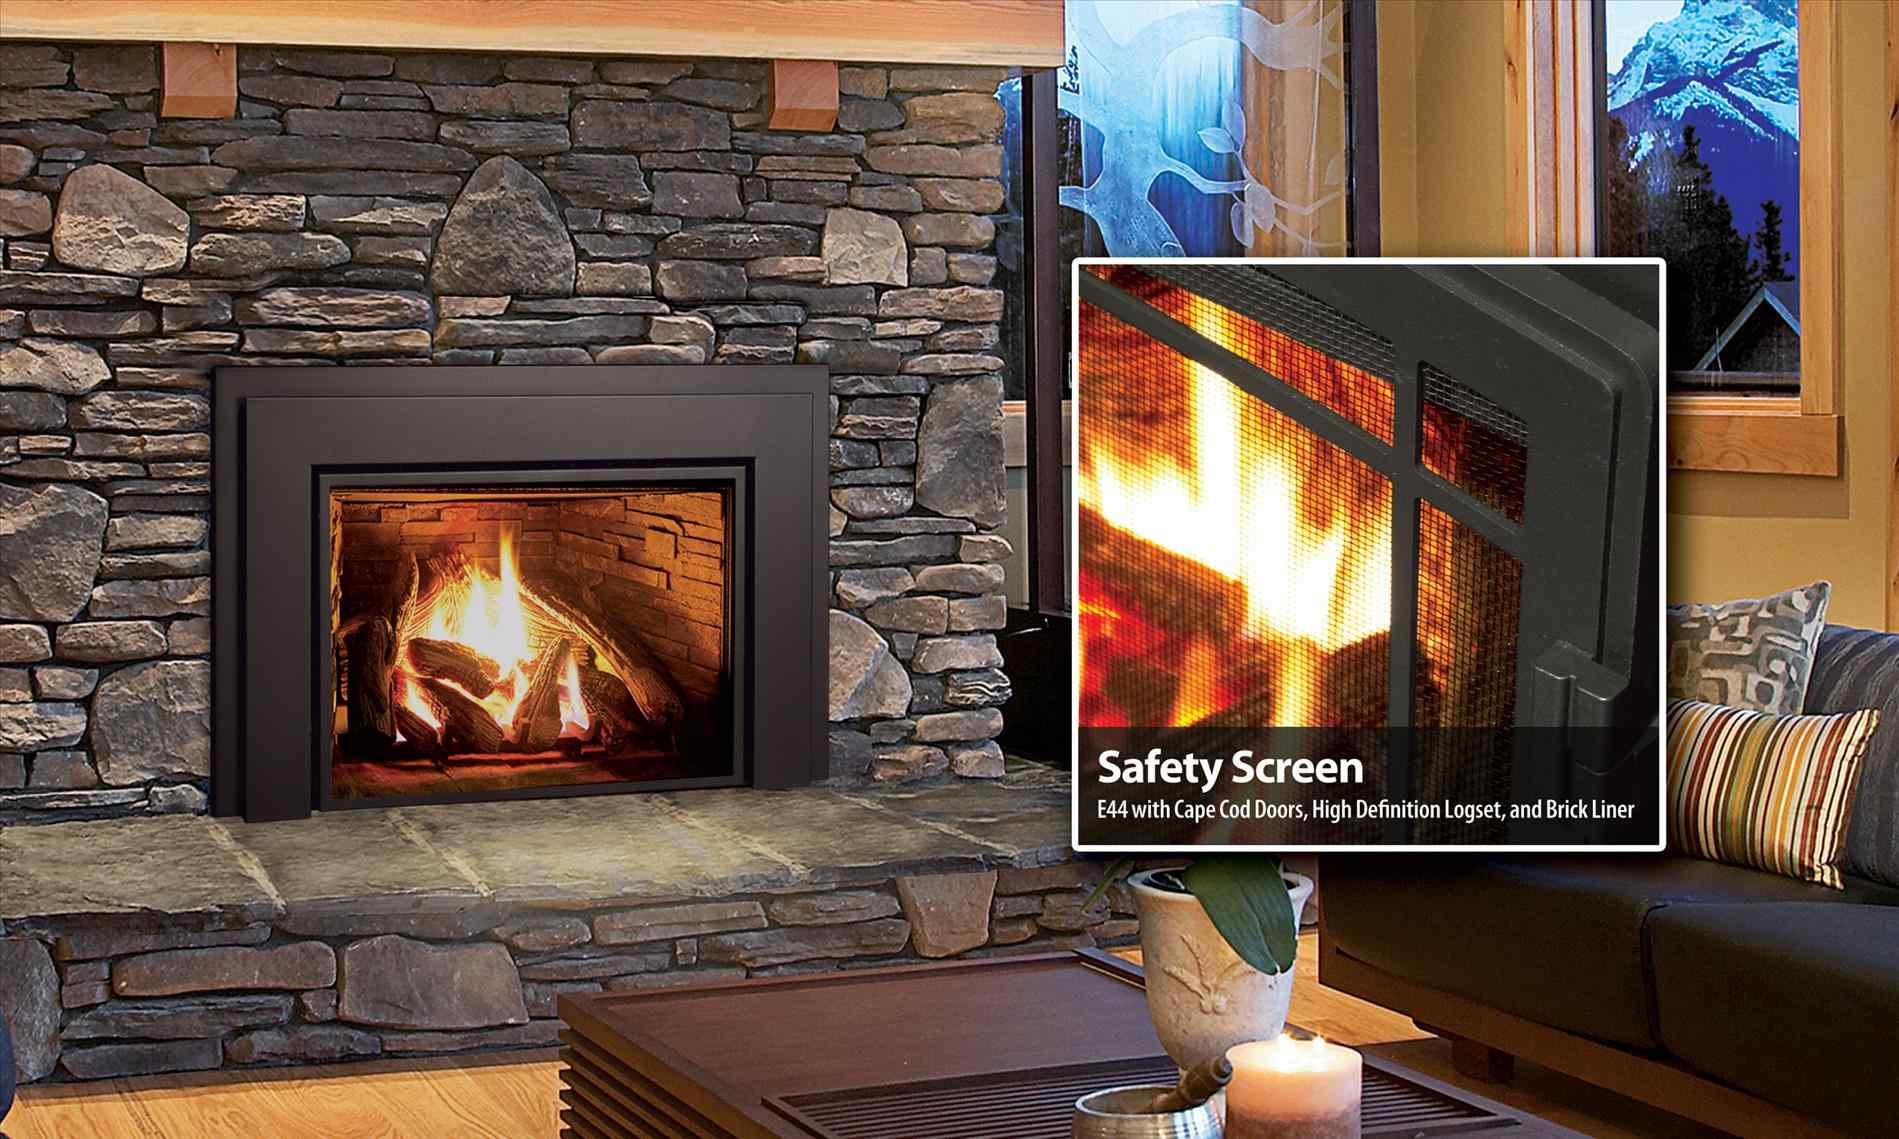 stunning desa international fireplace for your desa gas fireplace troubleshooting fire of desa international fireplace